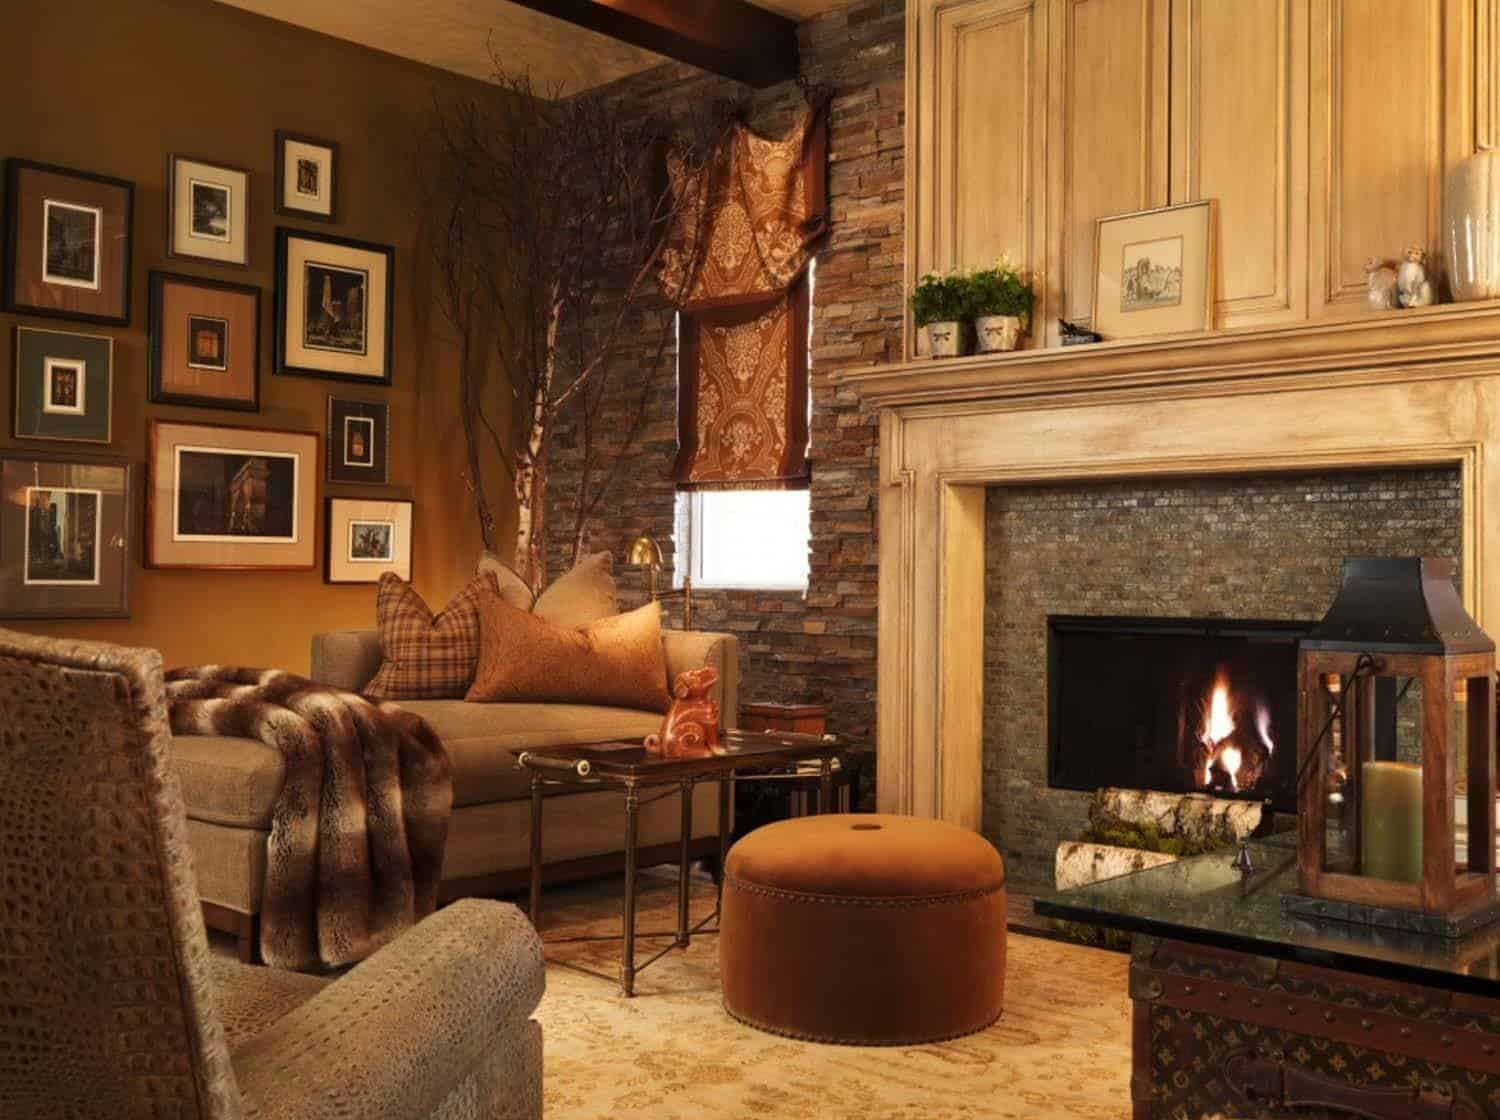 Cozy Fireplace Ideas-02-1 Kindesign